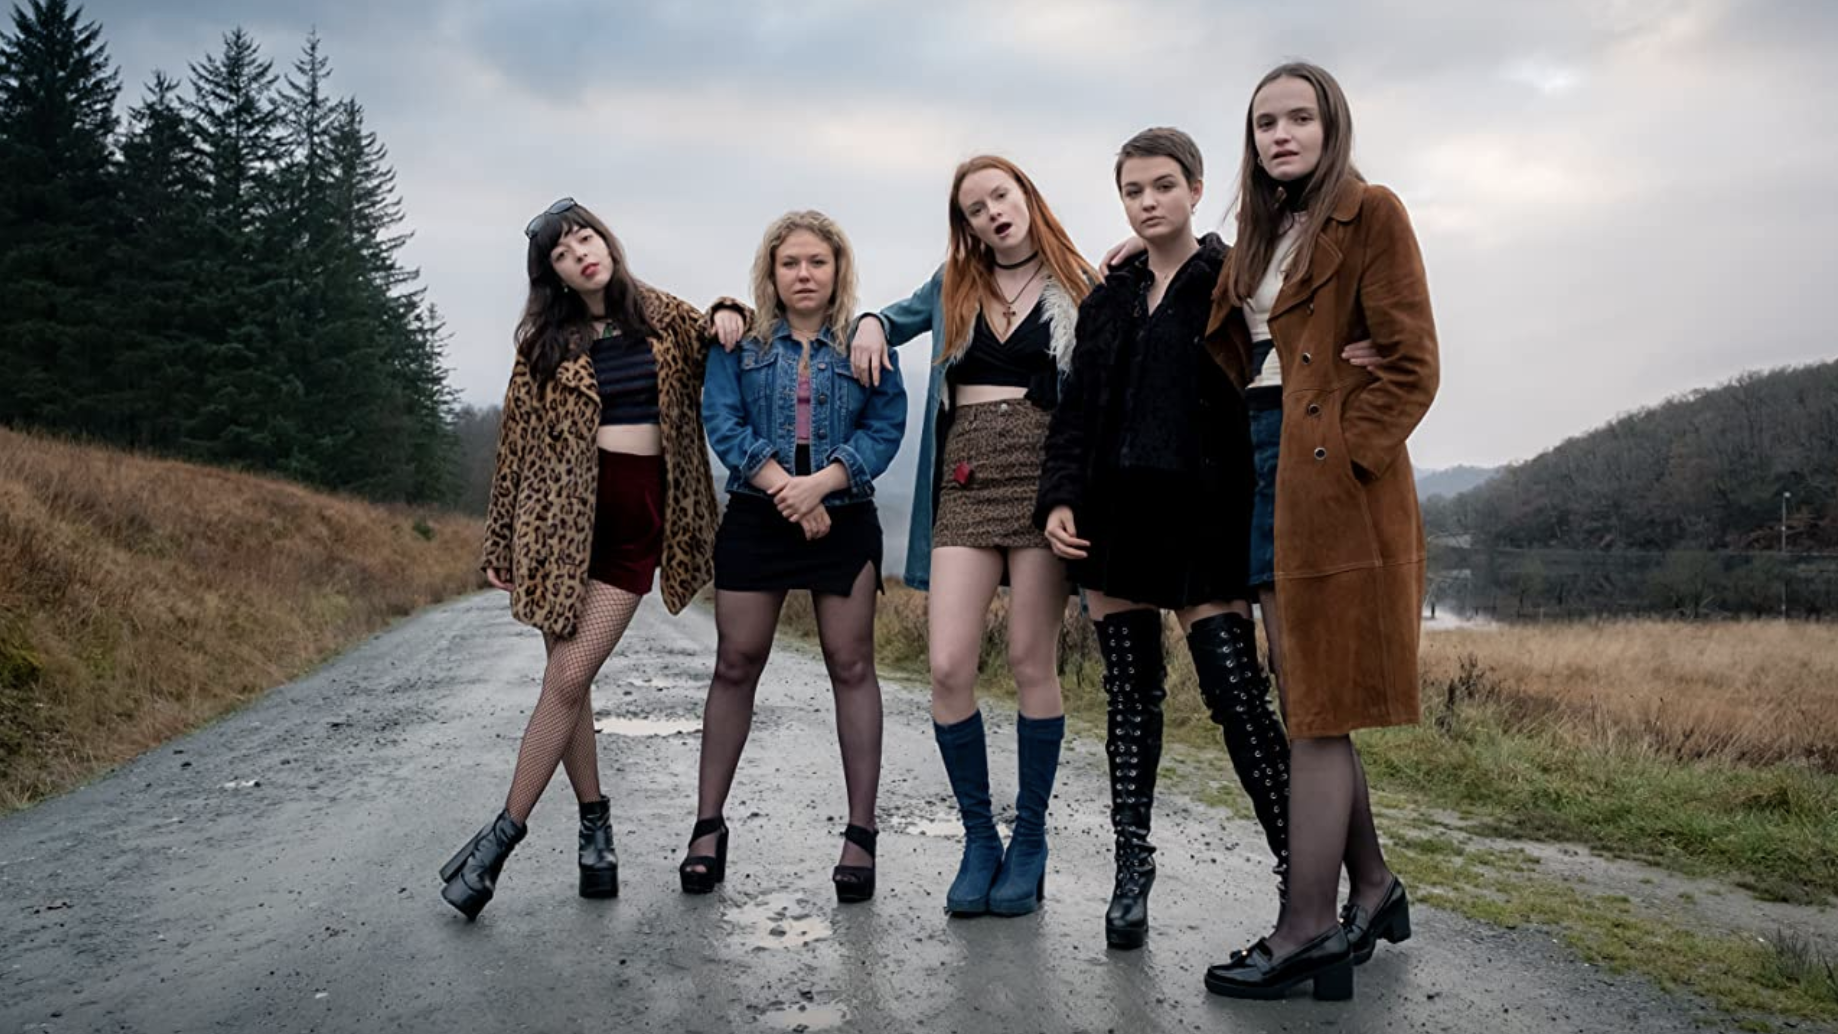 The five main characters of Our Ladies standing on a rural road.